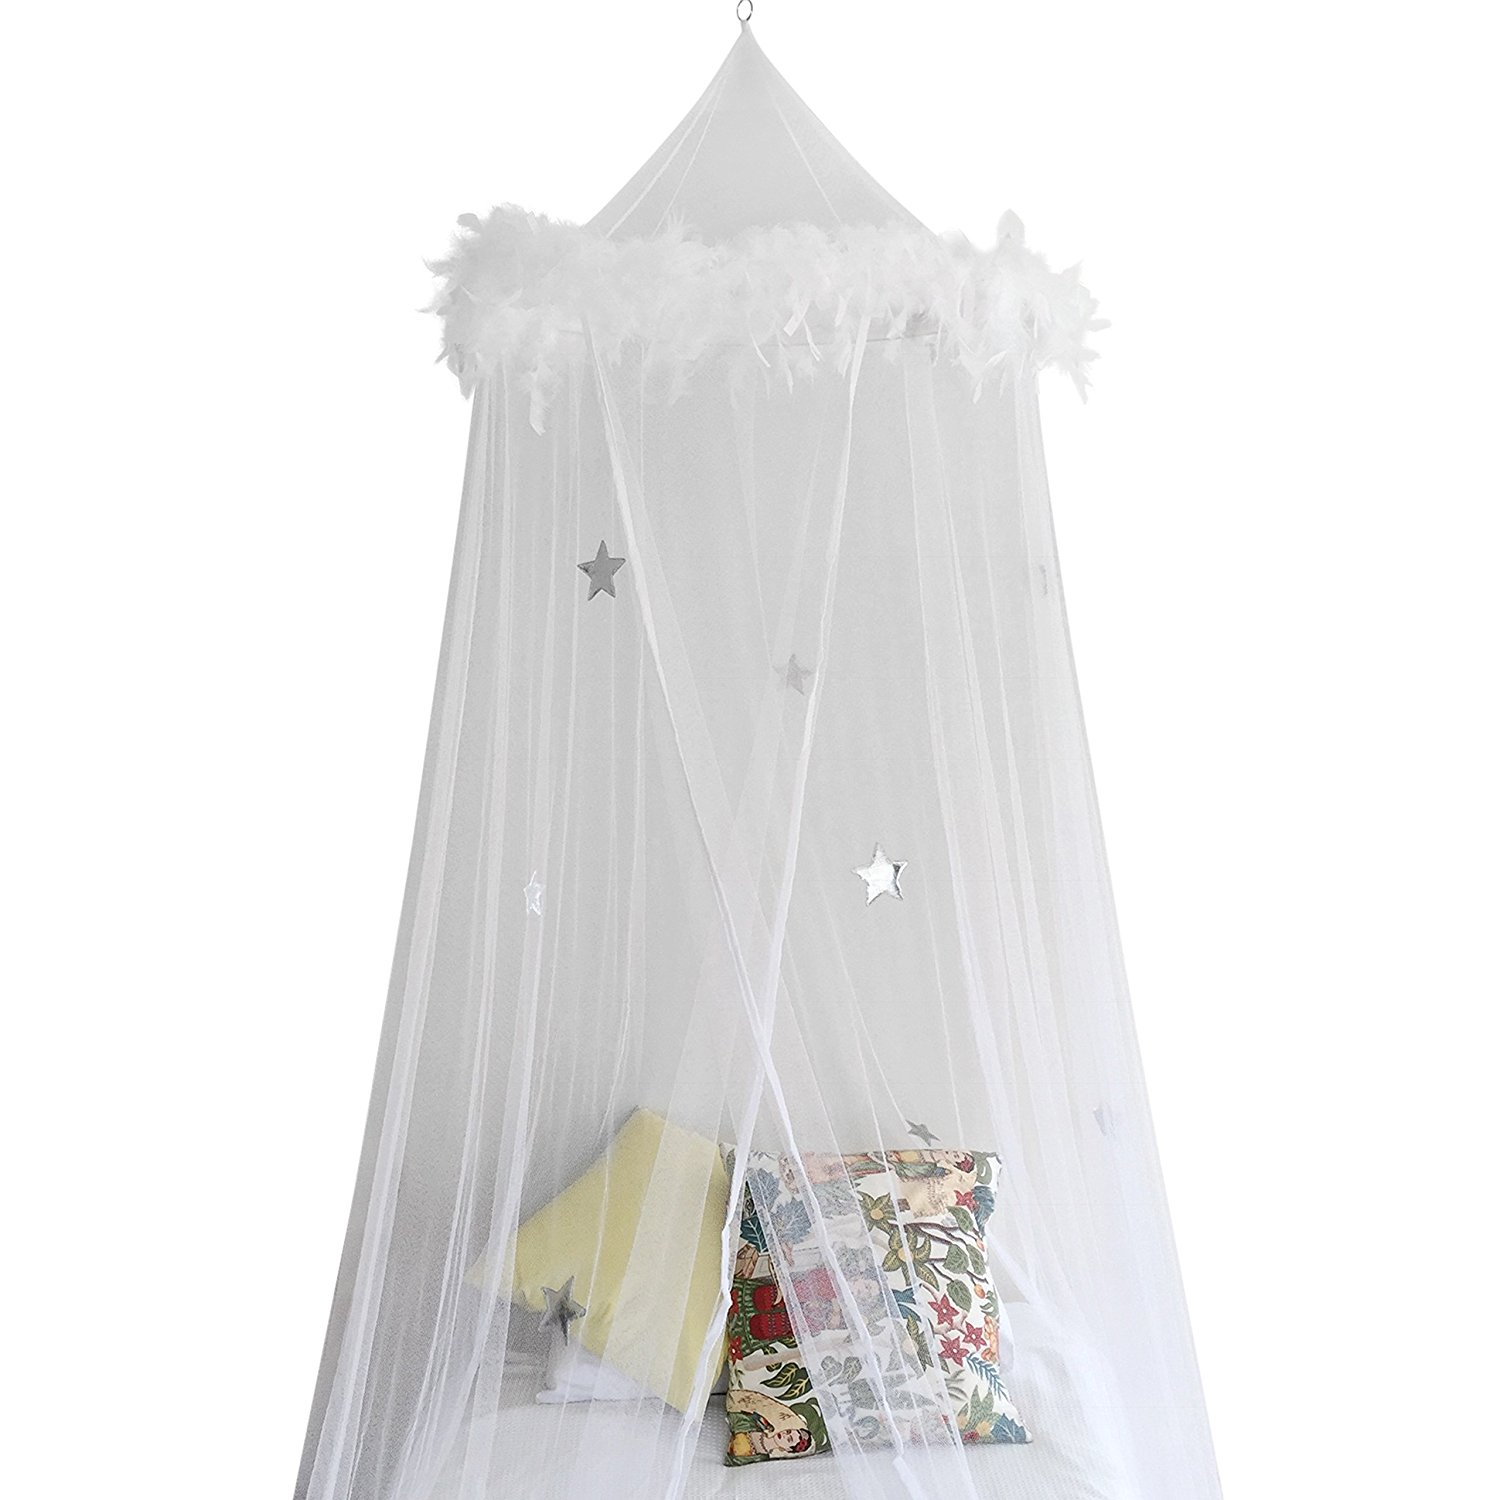 Bed Canopy Mosquito Net Curtains With Feathers And Stars